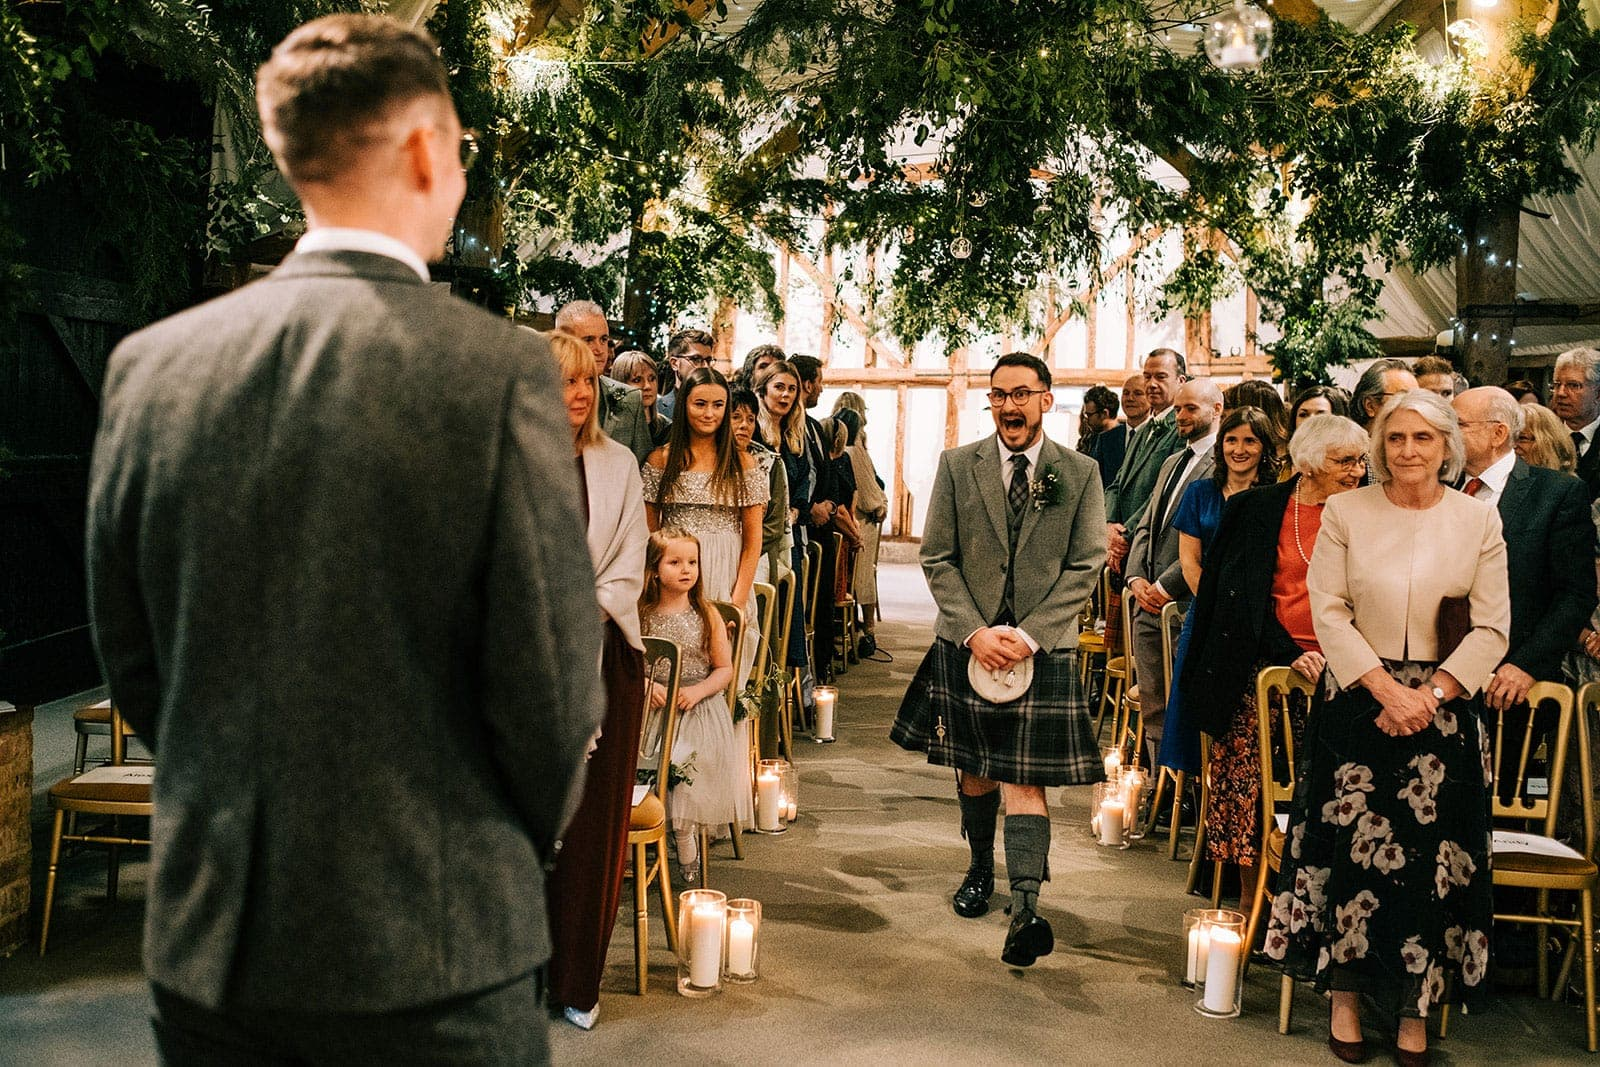 Louise's brideman pulls a face when coming down the aisle